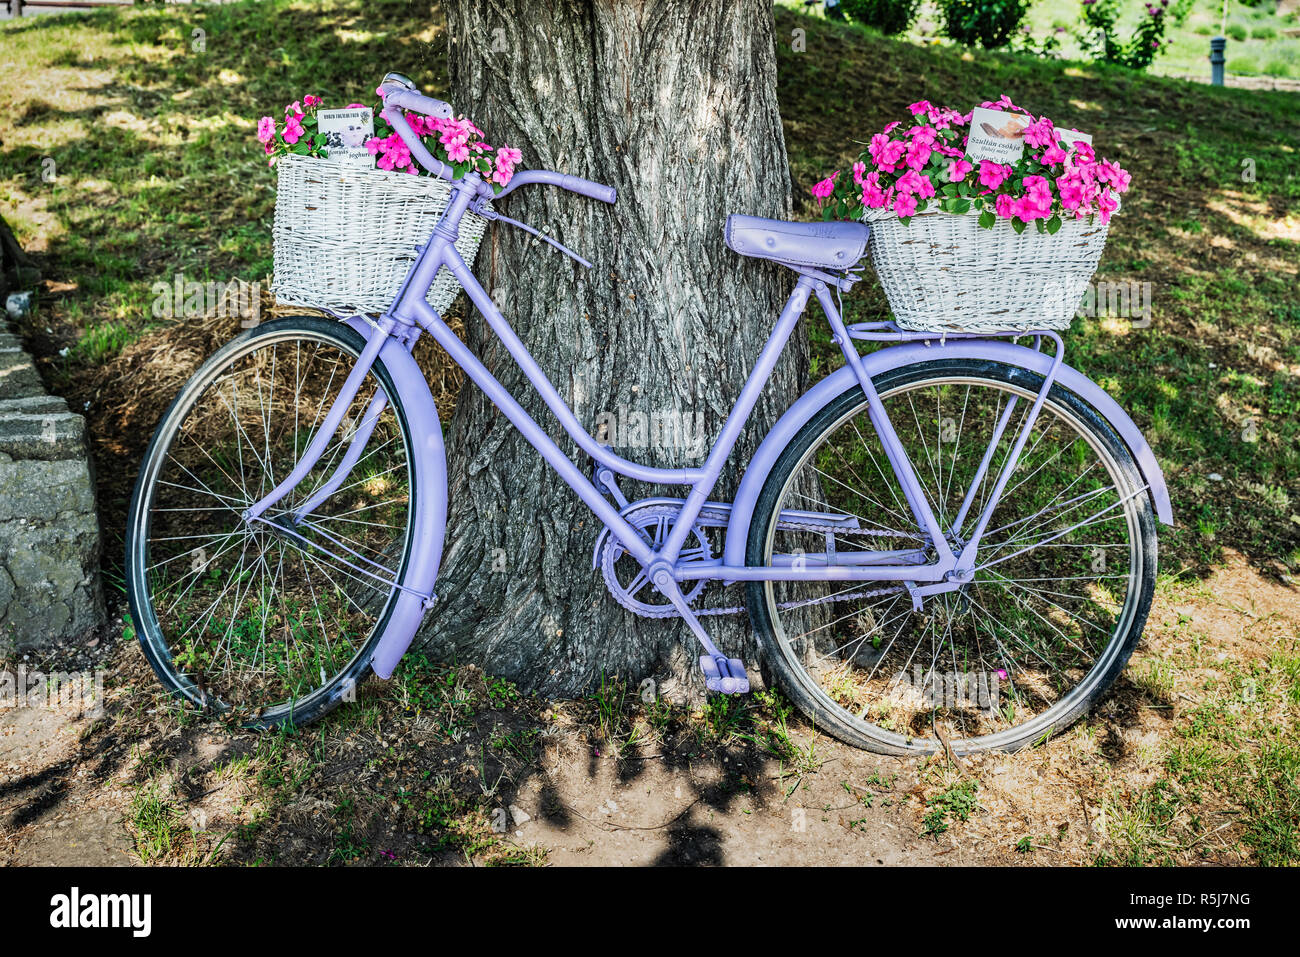 A violet bicycle stands at a tree. On the luggage carriers are two white baskets with flowers. The bike is located in Tihany, Hungary, Europe Stock Photo